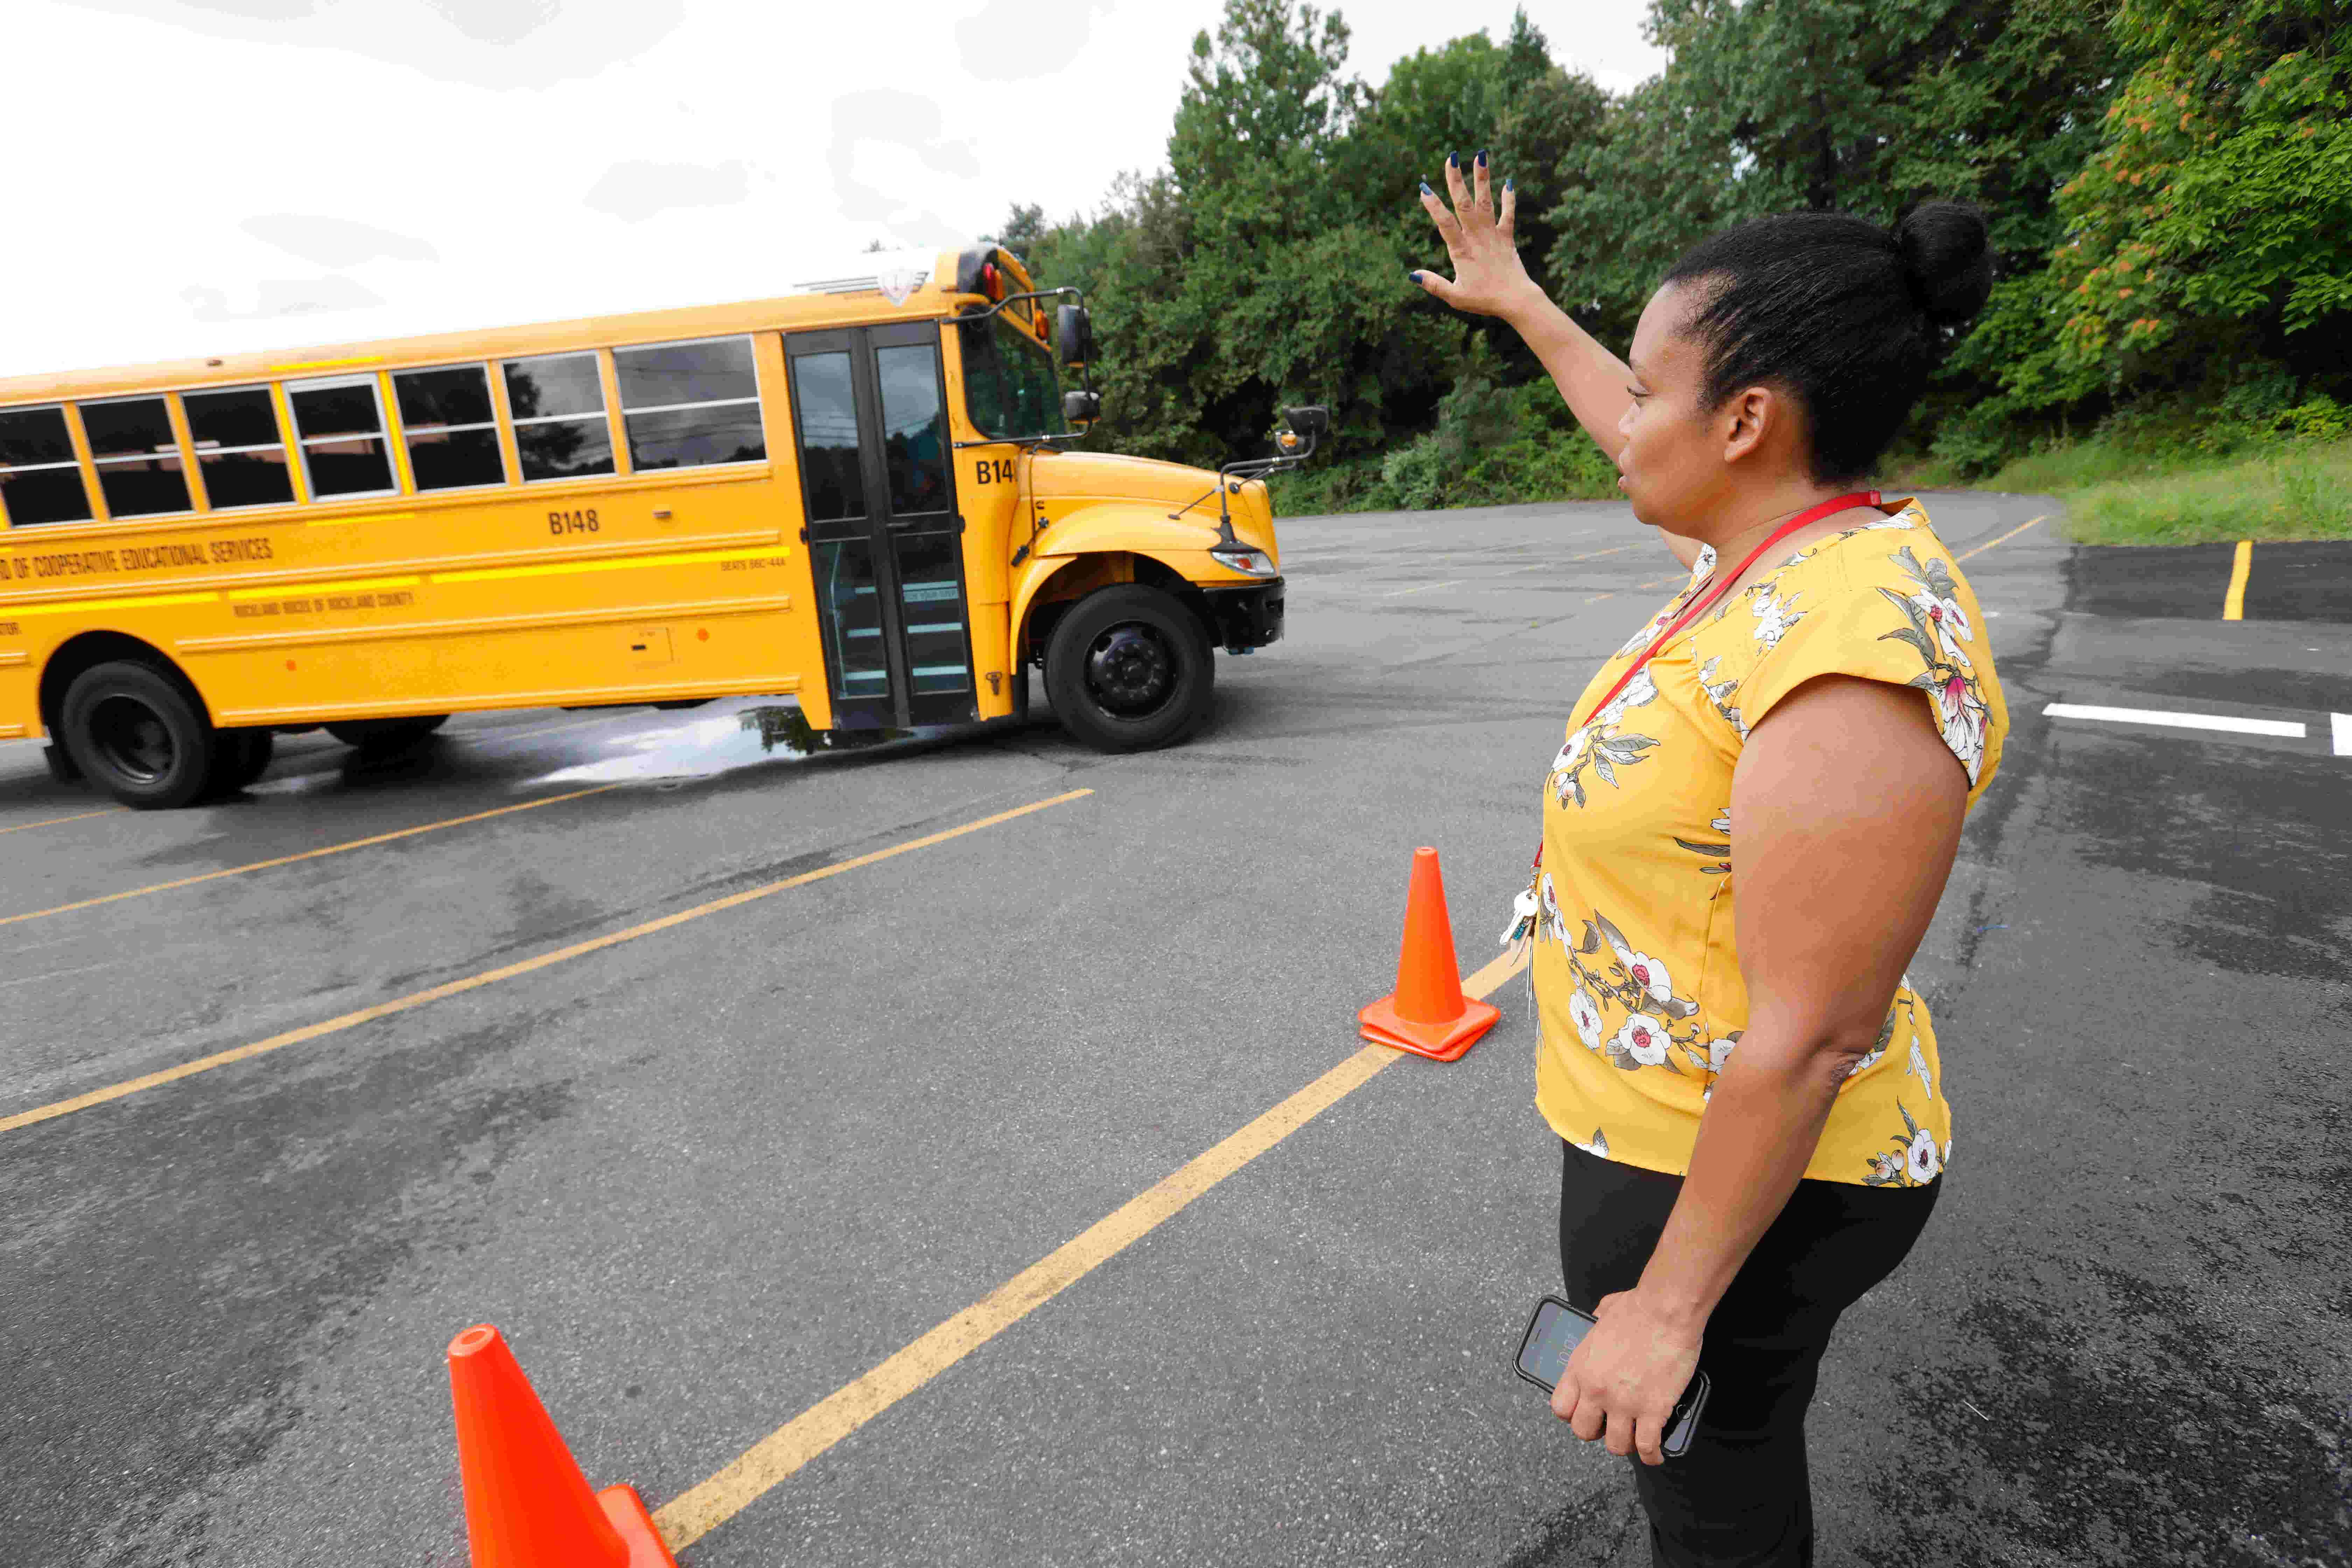 Video Boces Drivers Are Carefully Trained To Keep Students Safe